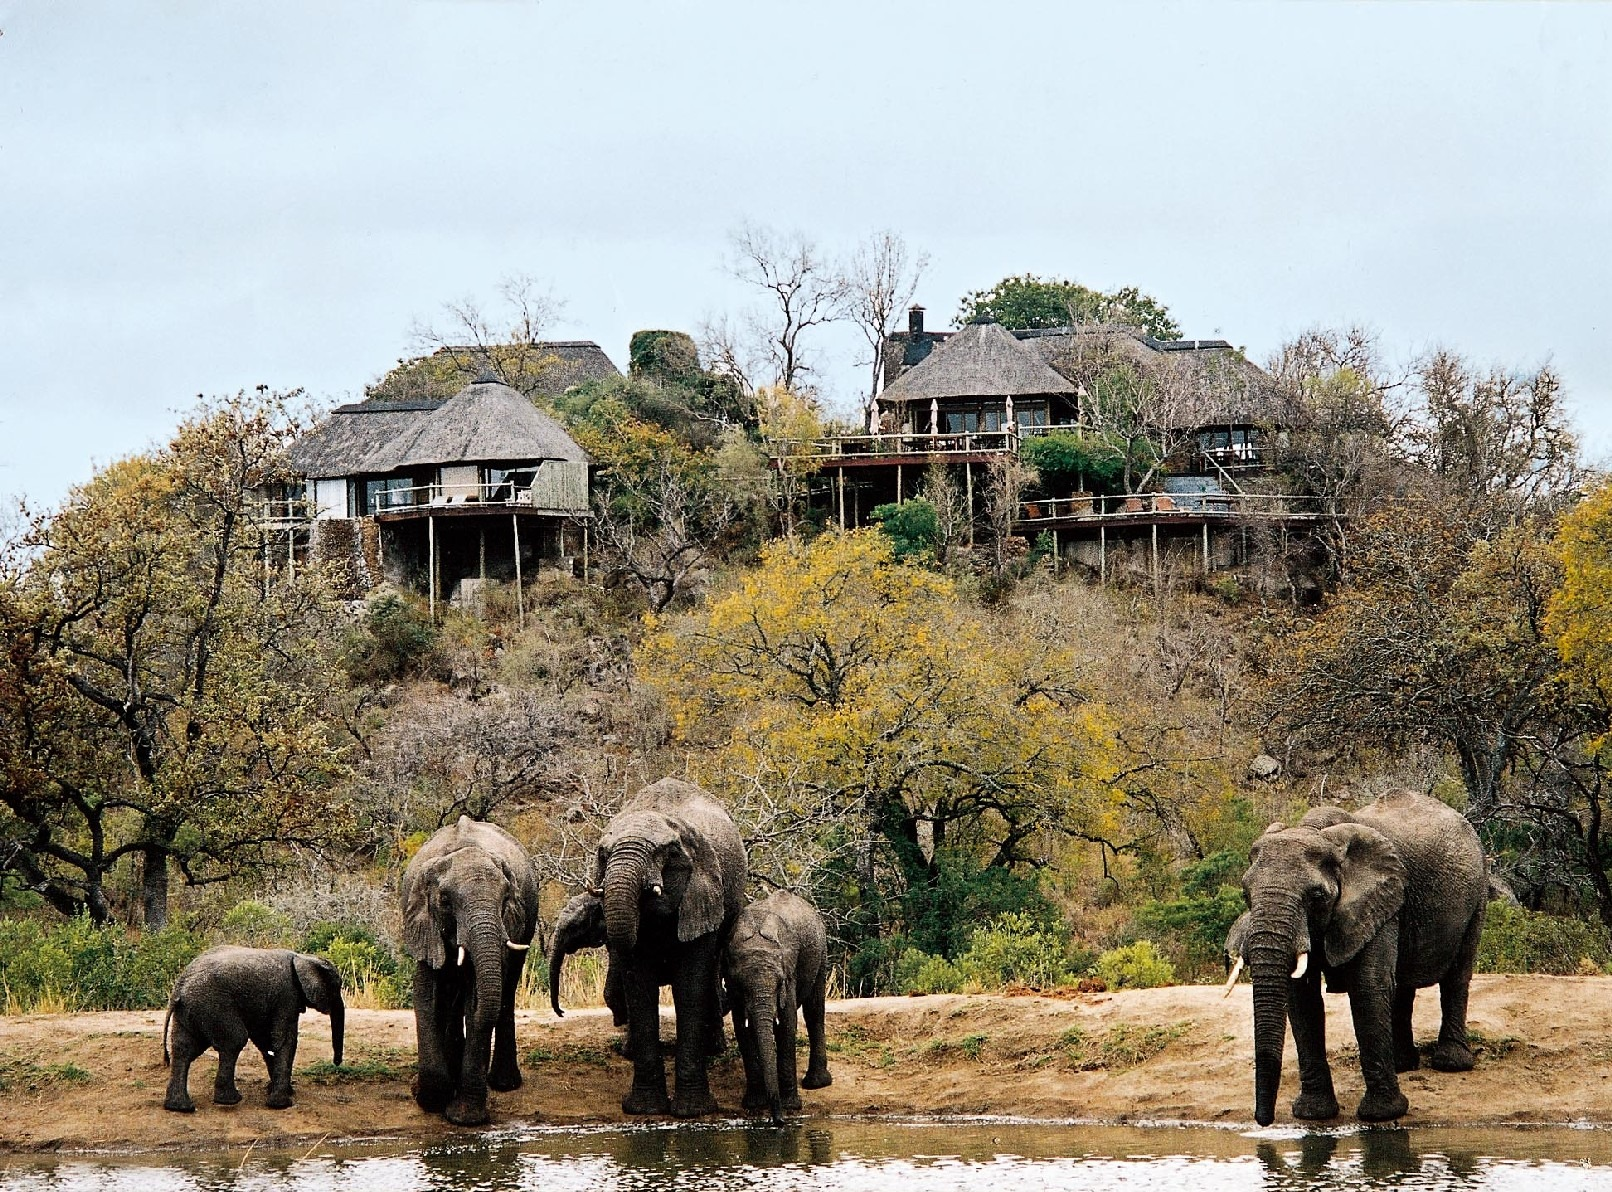 Elephants at Leopard Hills lodge waterhole